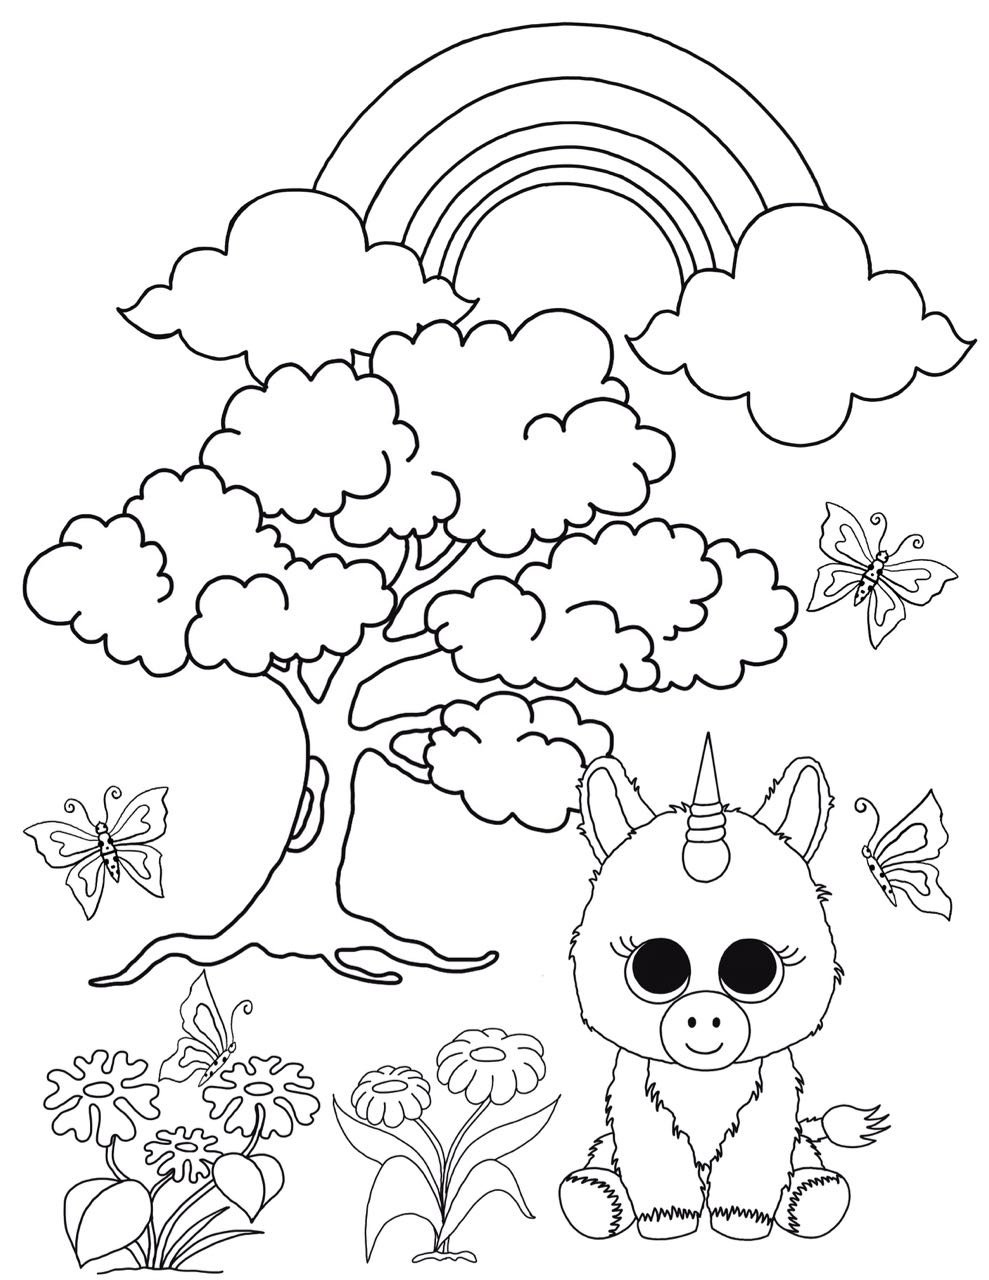 Free Beanie Boo Coloring Pages